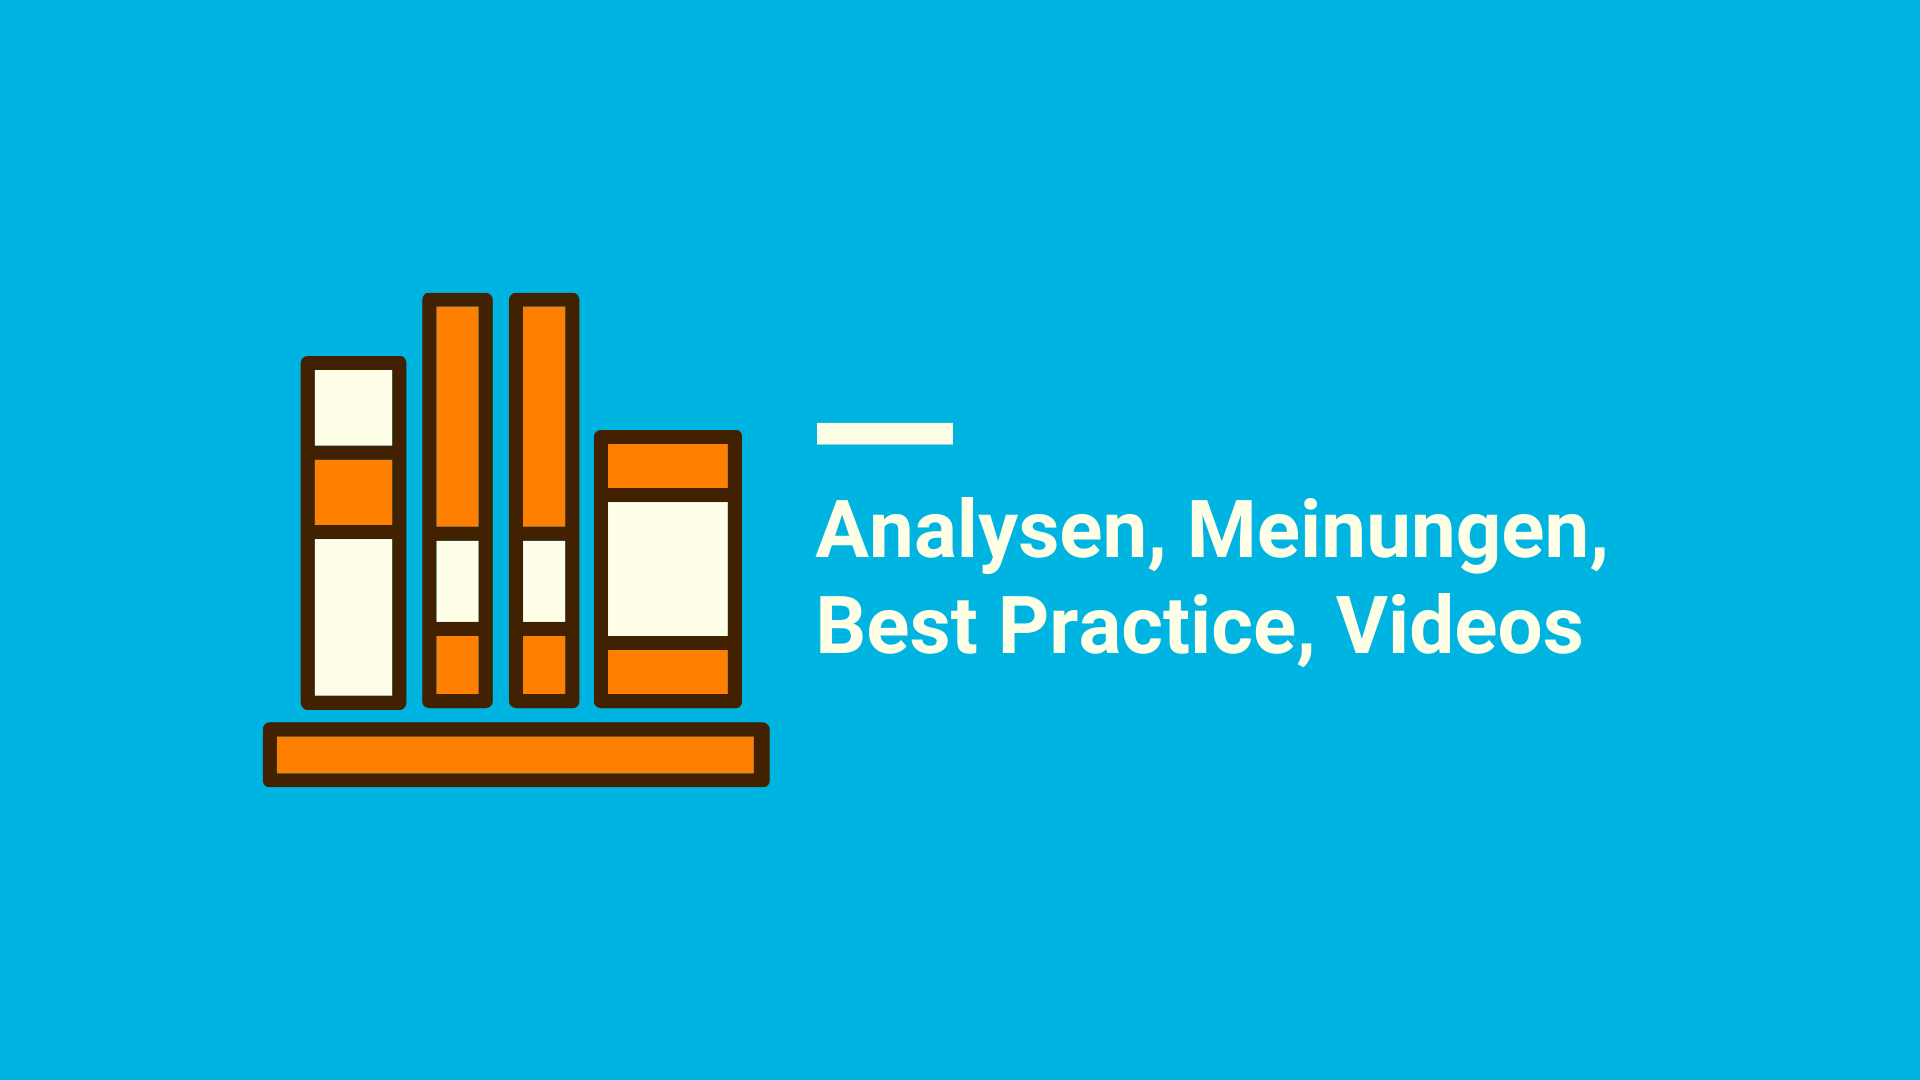 Analysen, Meinungen, Best Practice, Videos